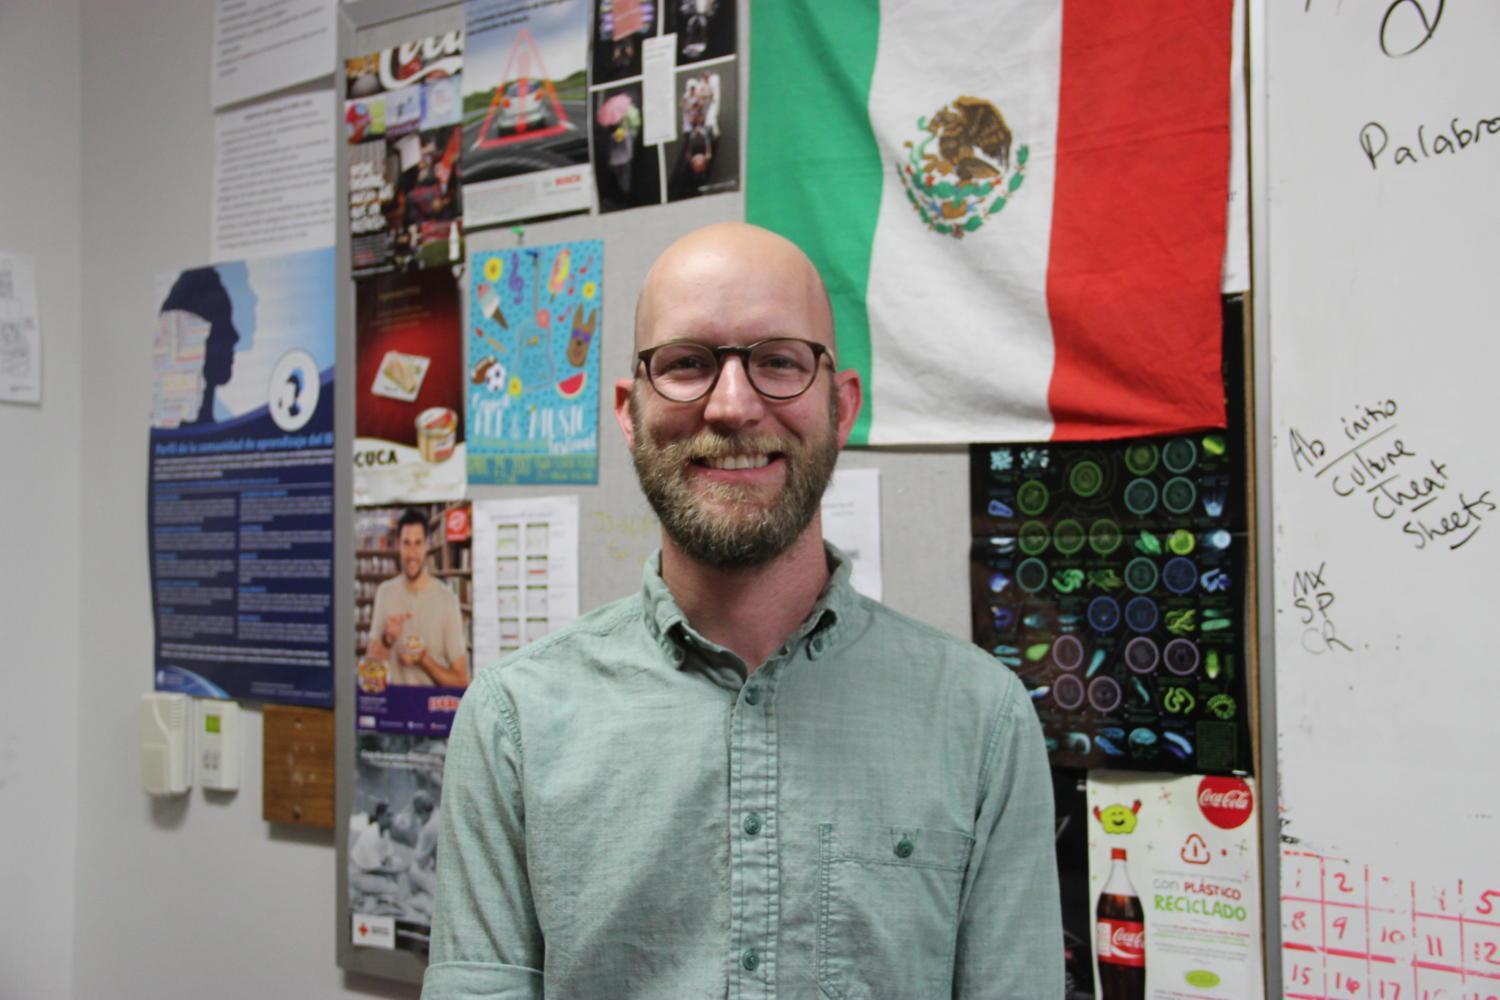 Coppell High School International Baccalaureate (IB) Spanish teacher Creighton Hulse is  leaving CHS at the end of the 2016-2017 school year. Hulse left Coppell in 2012 to teach in China and Cape Cod, Mass. before returning to CHS in 2016.